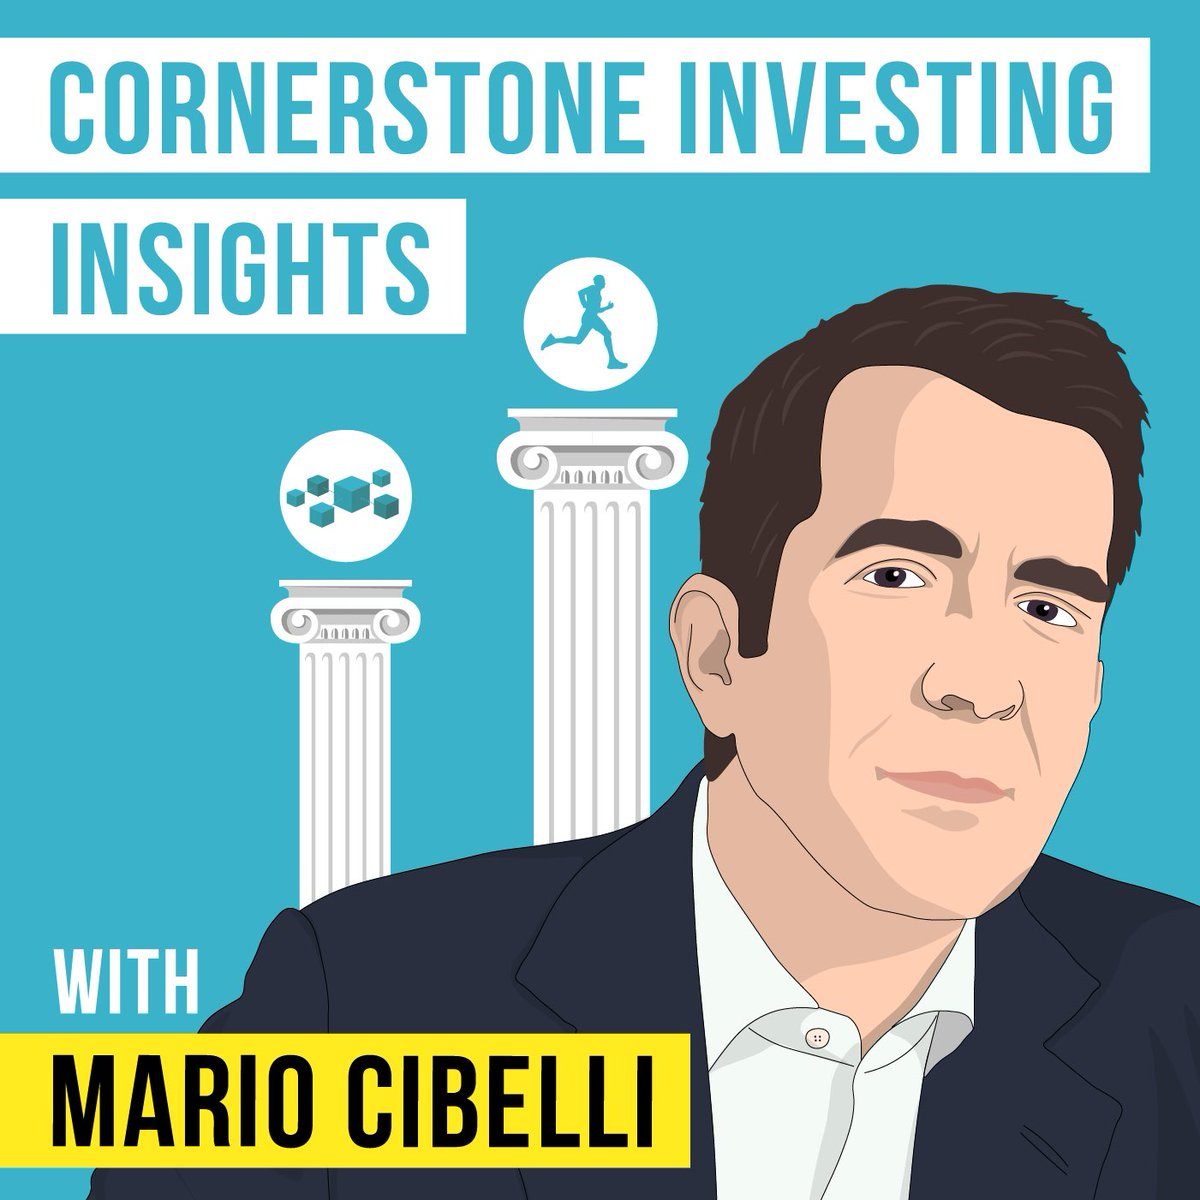 My conversation with @mario_cibelli on deep research and public equity investing.  - cracking Netflix vs blockbuster - value of visiting distribution centers - Stitch Fix - WWE - Tequila  Mario is known for his incredibly deep research. You'll see why.